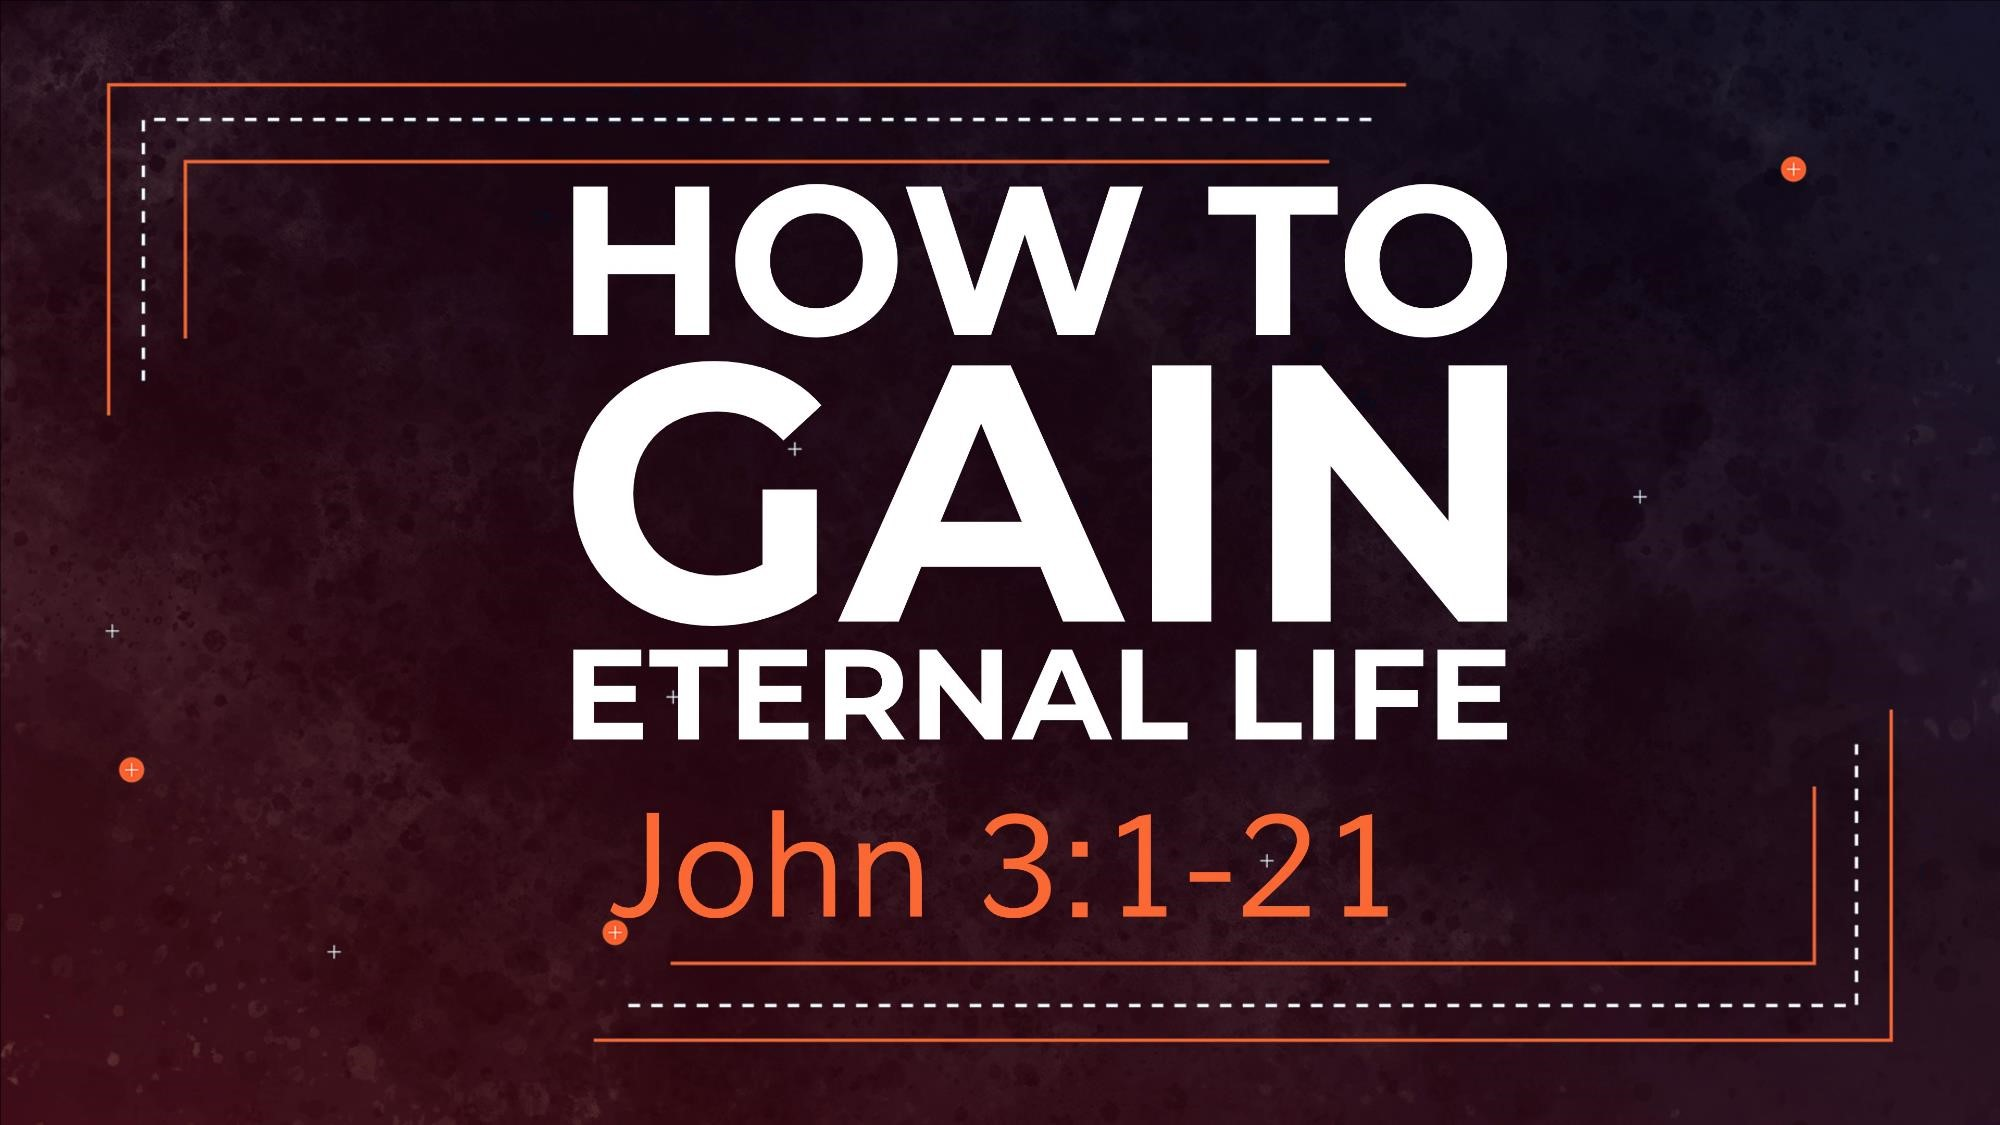 How to gain eternal life